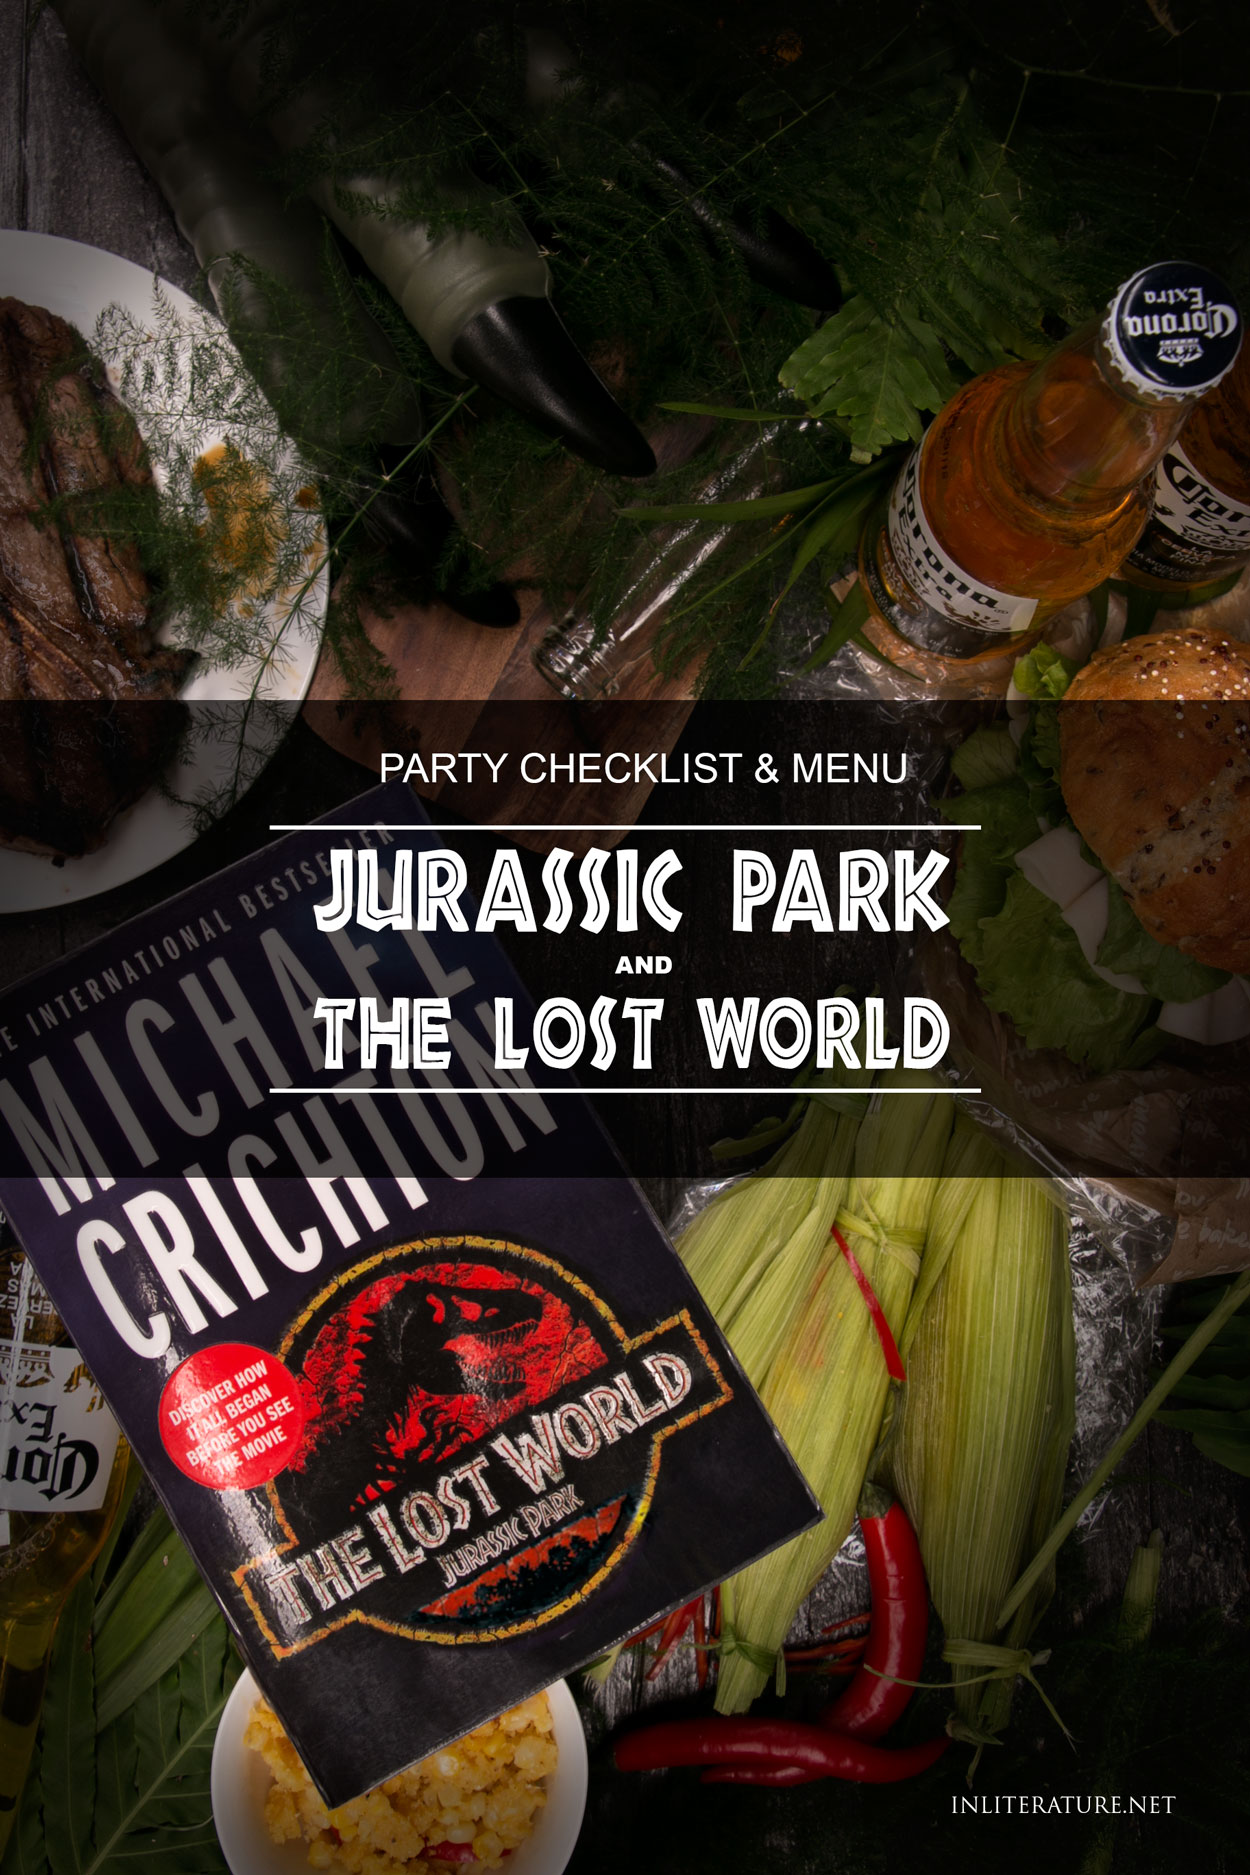 Use our party checklist and menu to plan your Jurassic Park party for the latest Jurassic World movie.